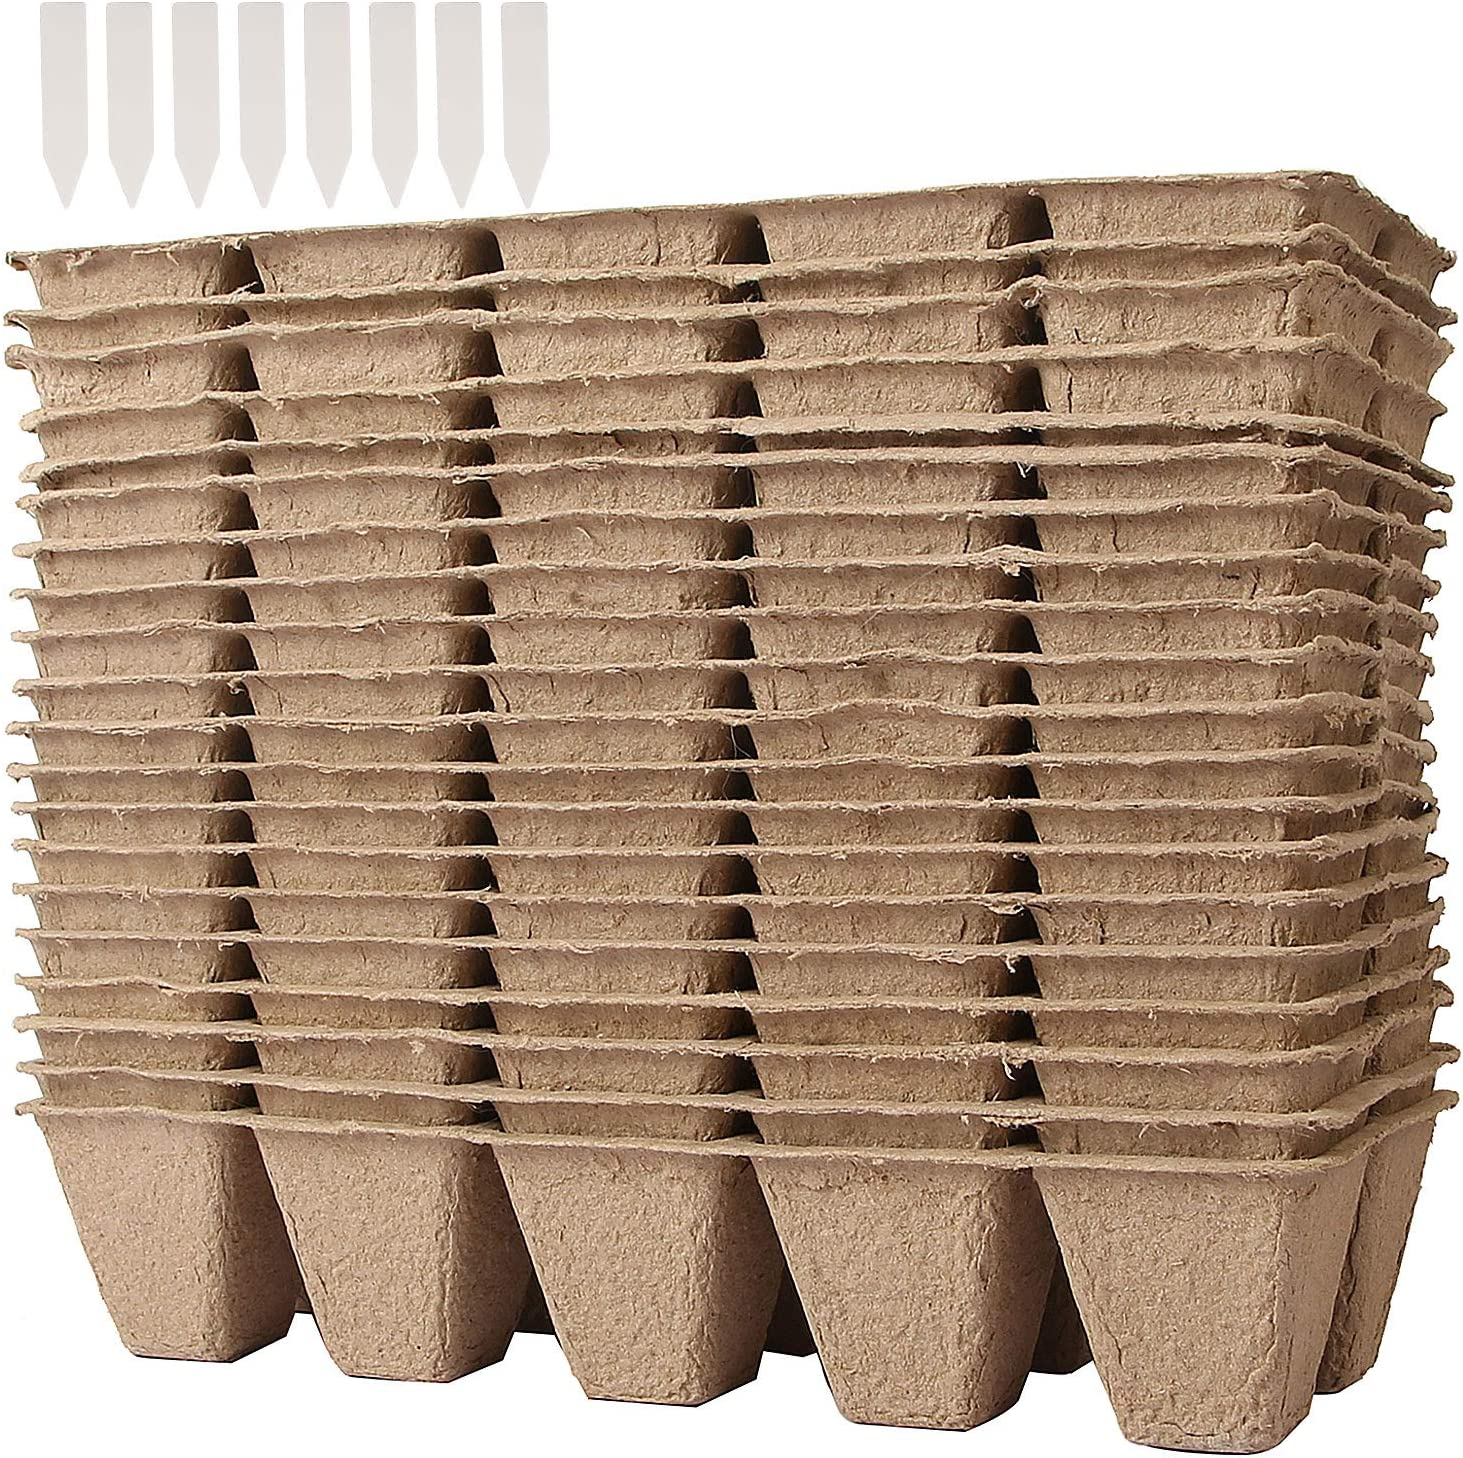 KEILEOHO 20 Pack 200 Cells Seed Starter Tray Kit,100% Natural Biodegradable Pulp Peat Pots for Seedling Plantable Organic Seeds Growing Trays Germination Containers with Holes with 200 White Labels